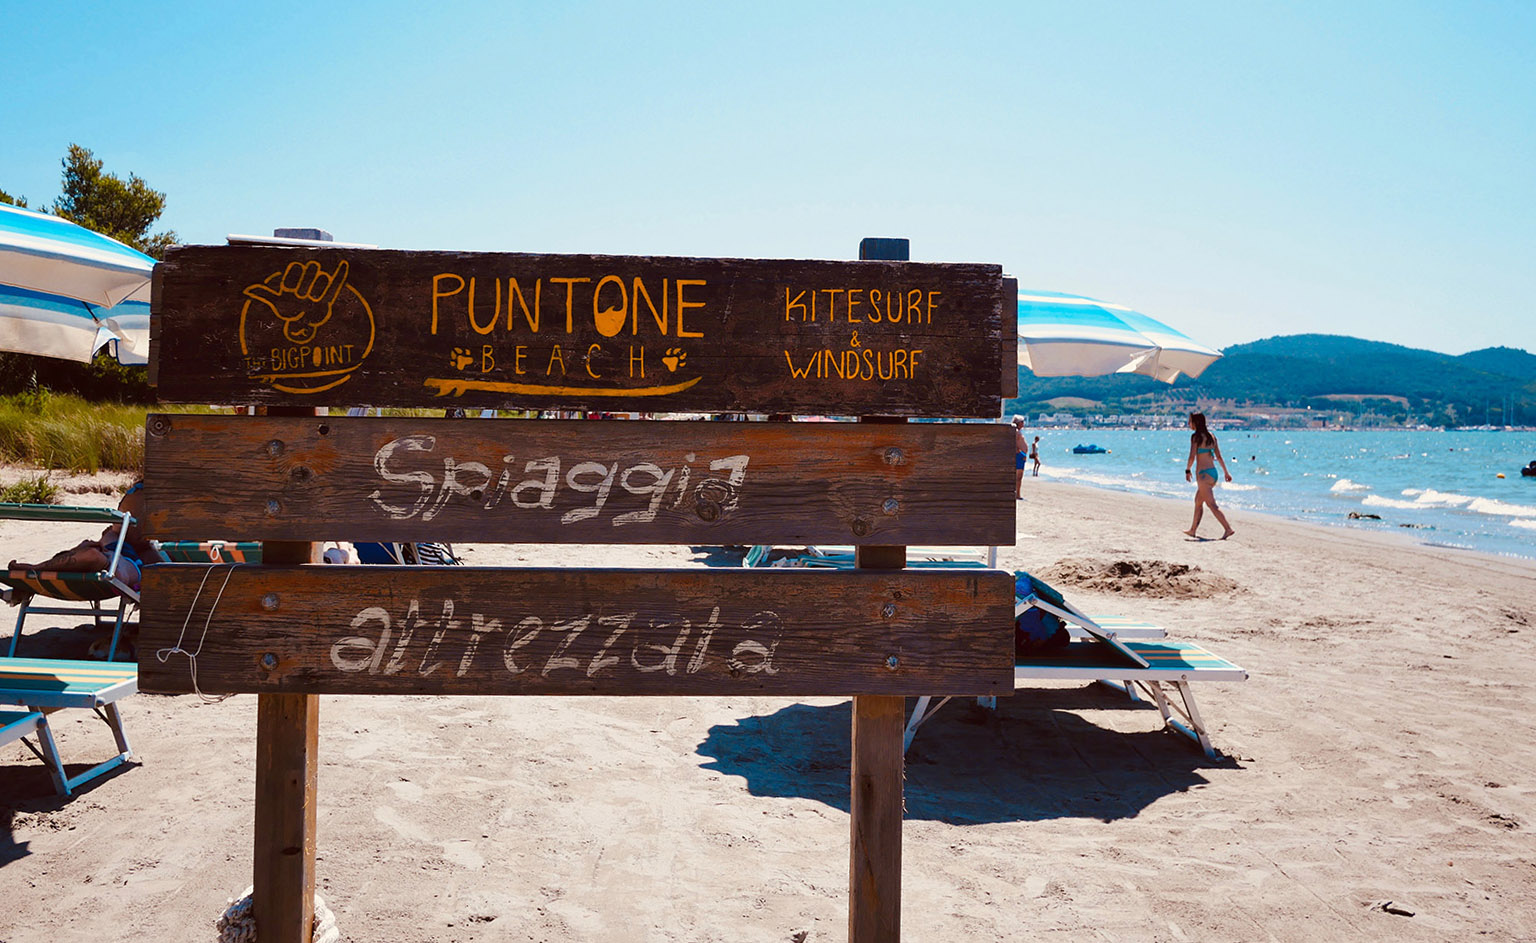 Puntone beach sign on the beach.